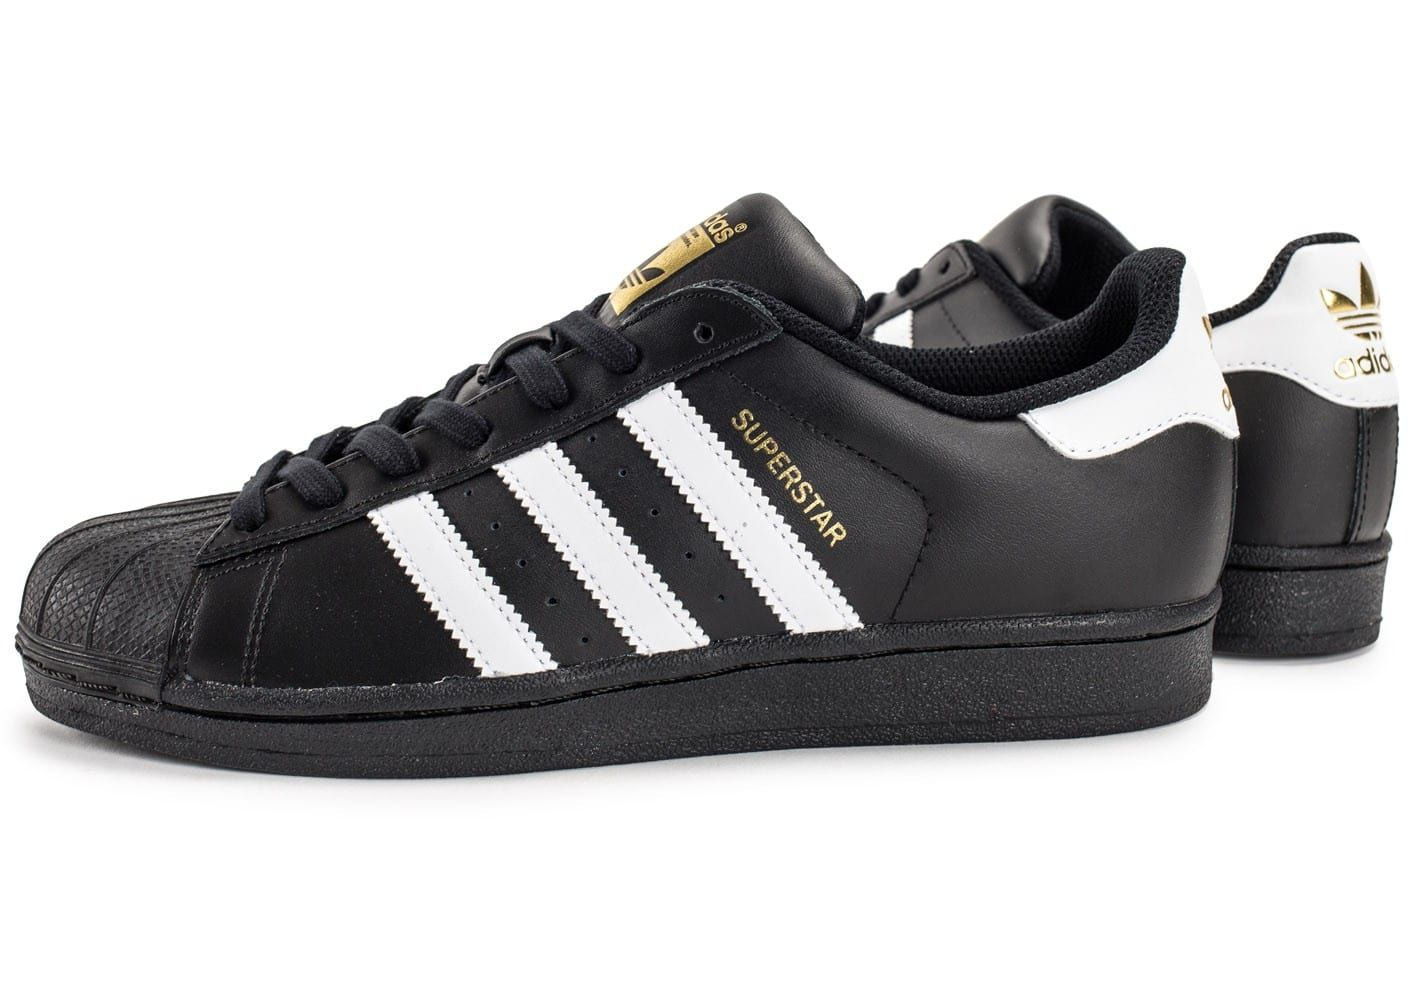 adidas chaussure noire